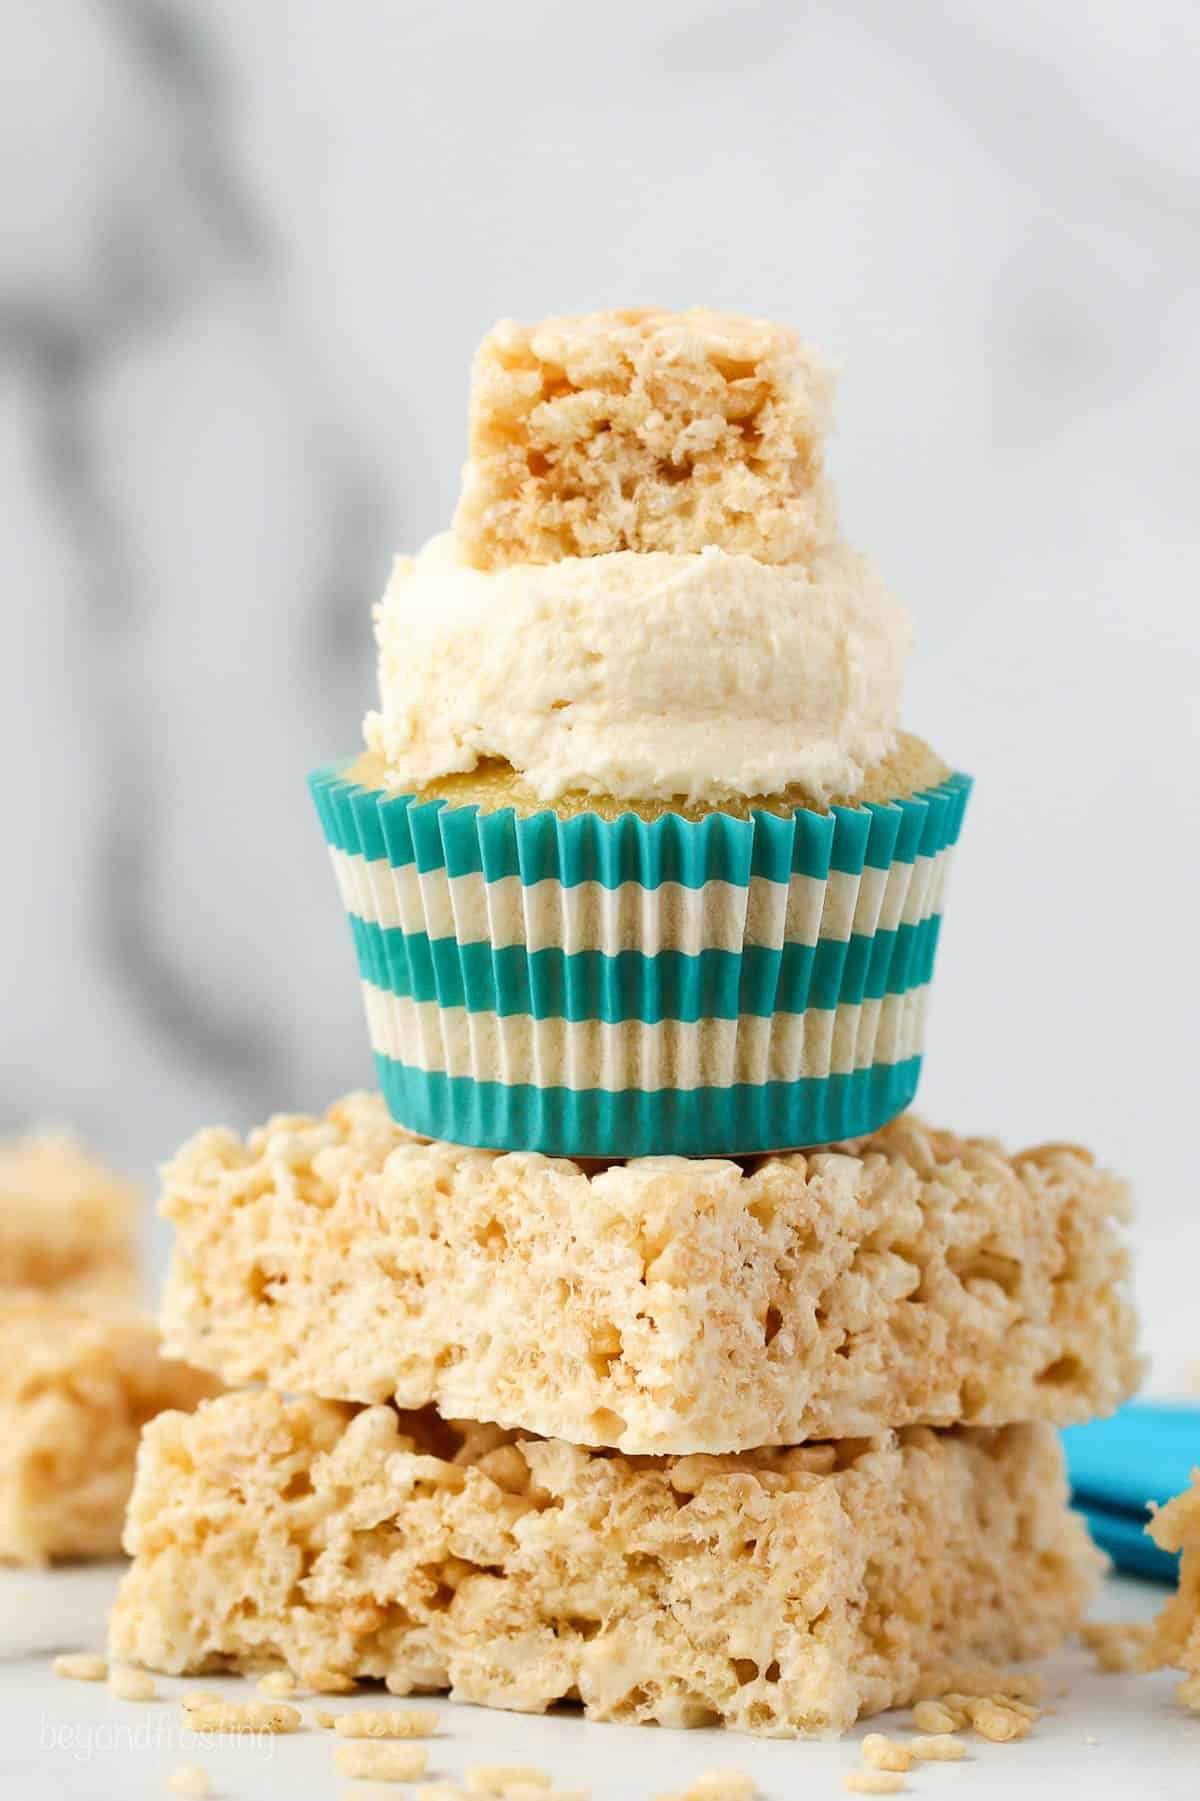 Two rice krispie treats stacked, with a cupcake on top garnished with a mini rice krispie treat